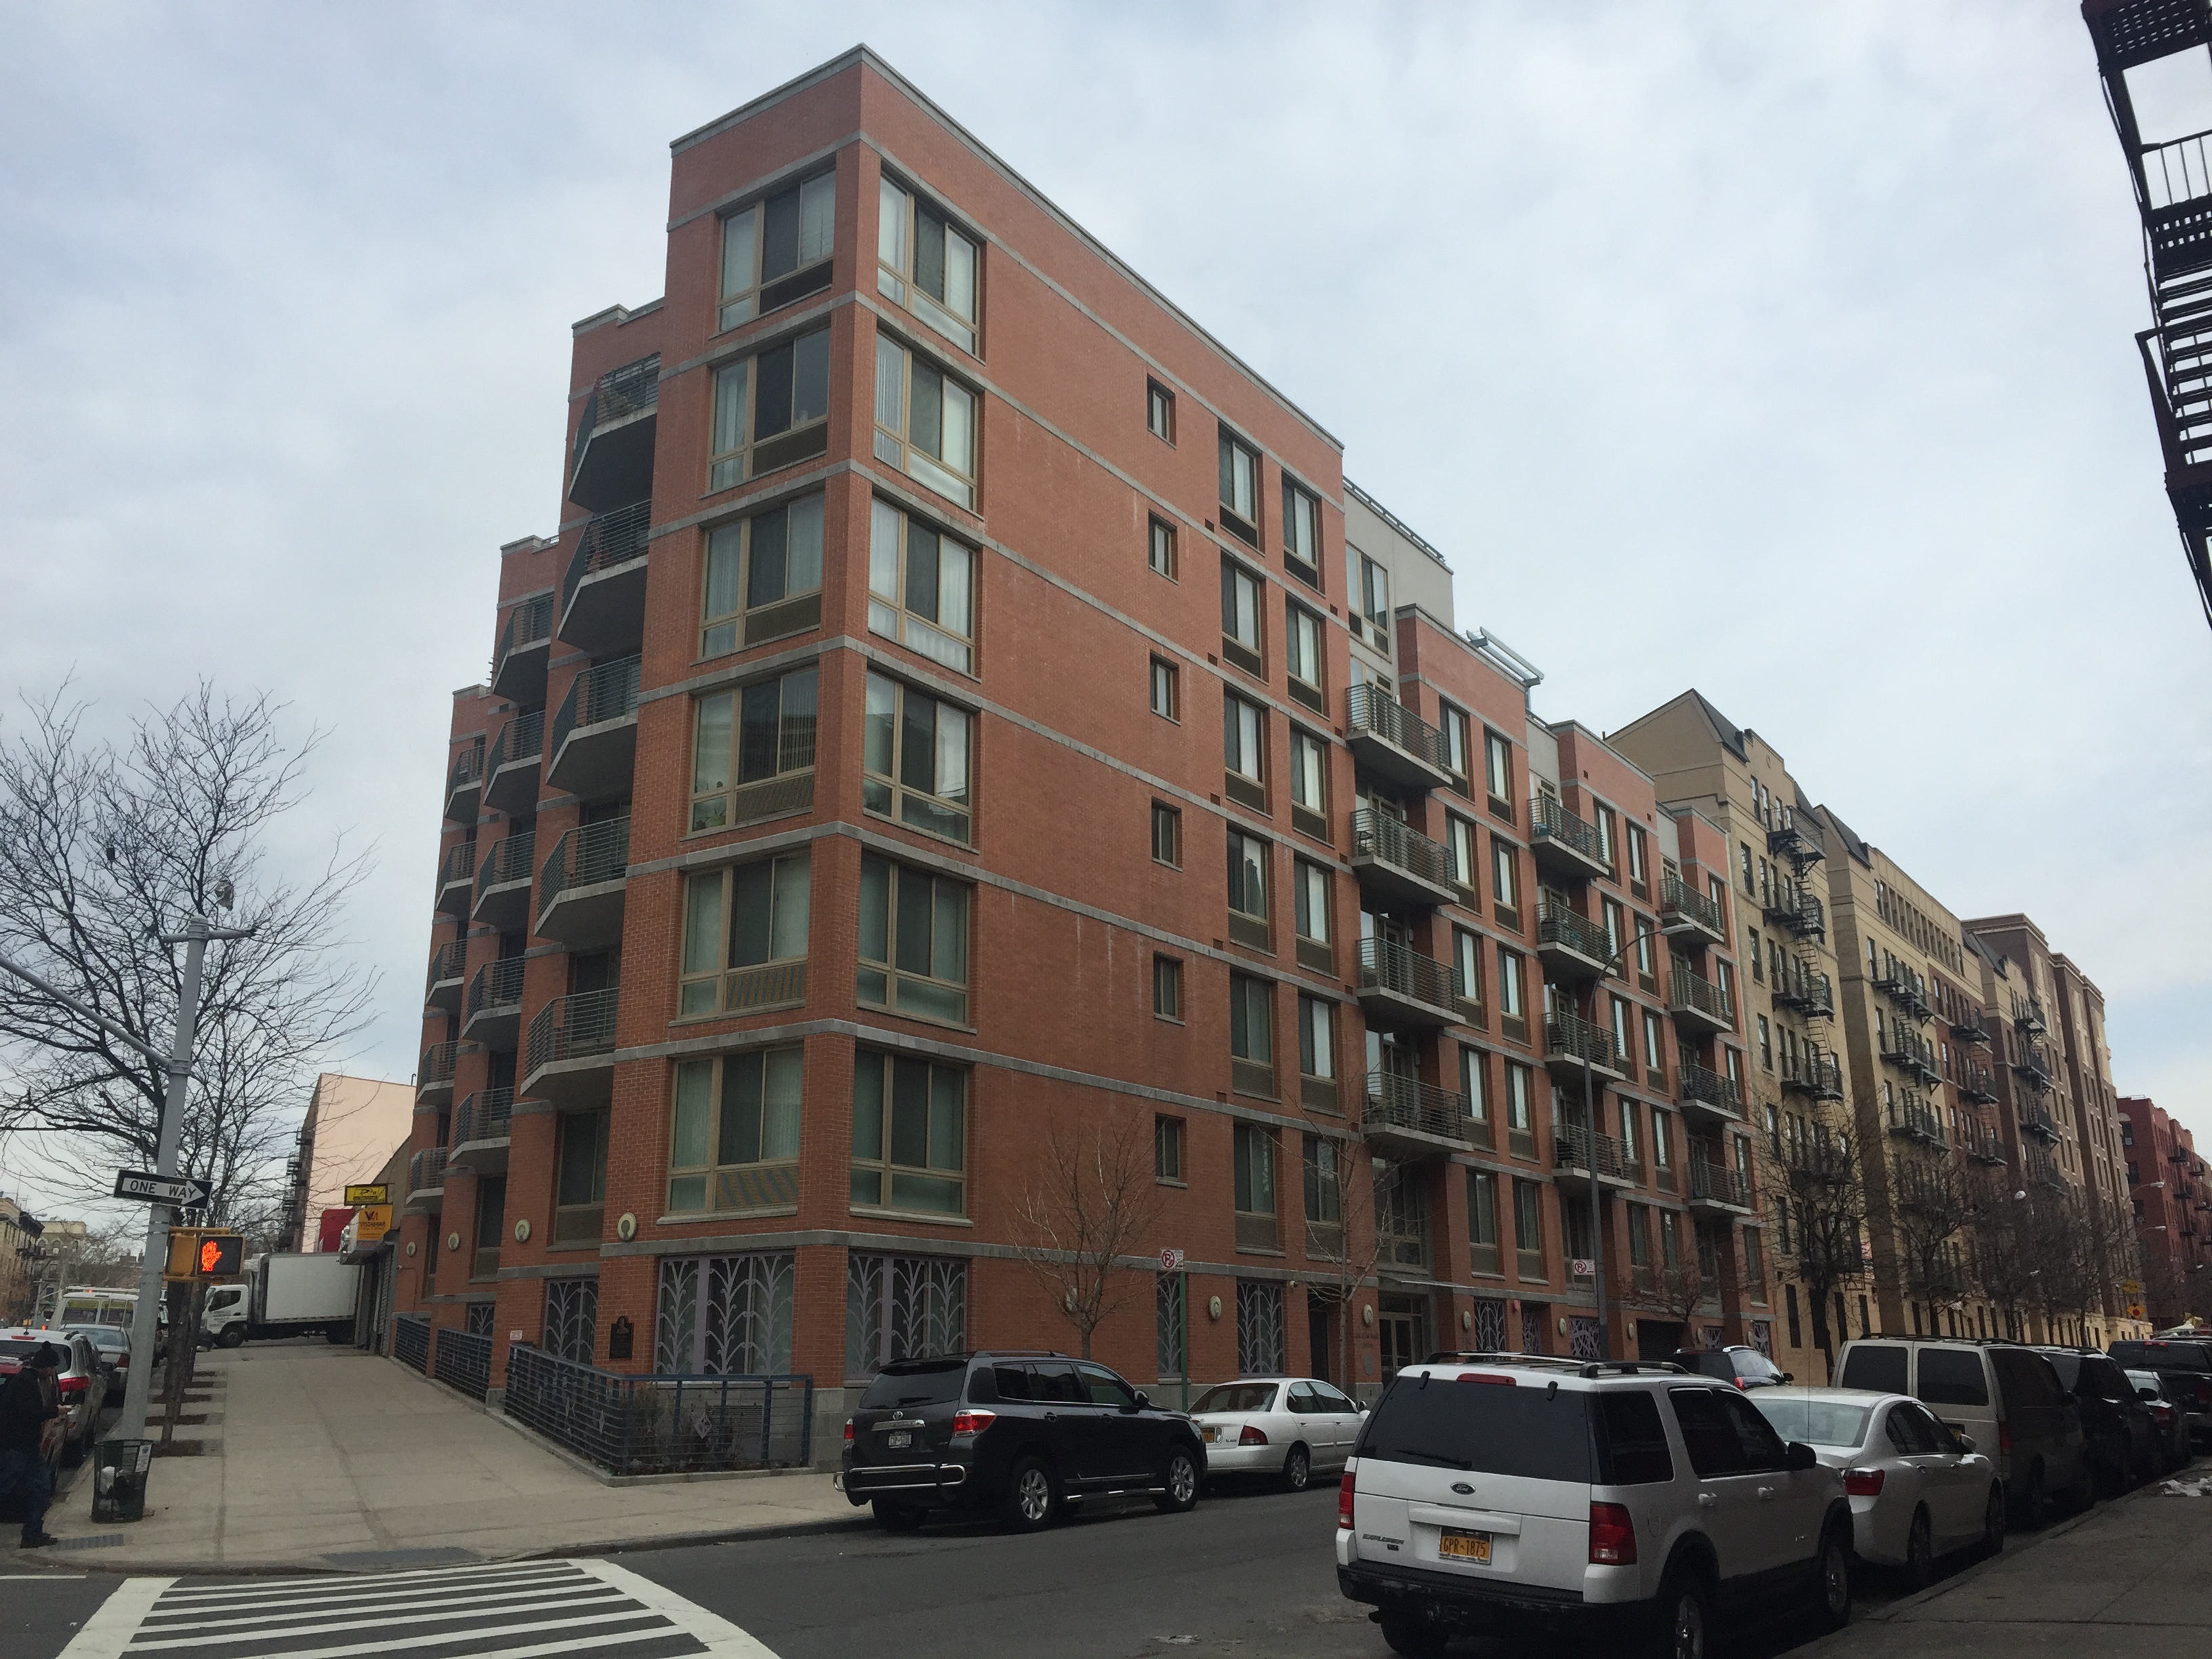 Co-op owners spar with developer over repairs